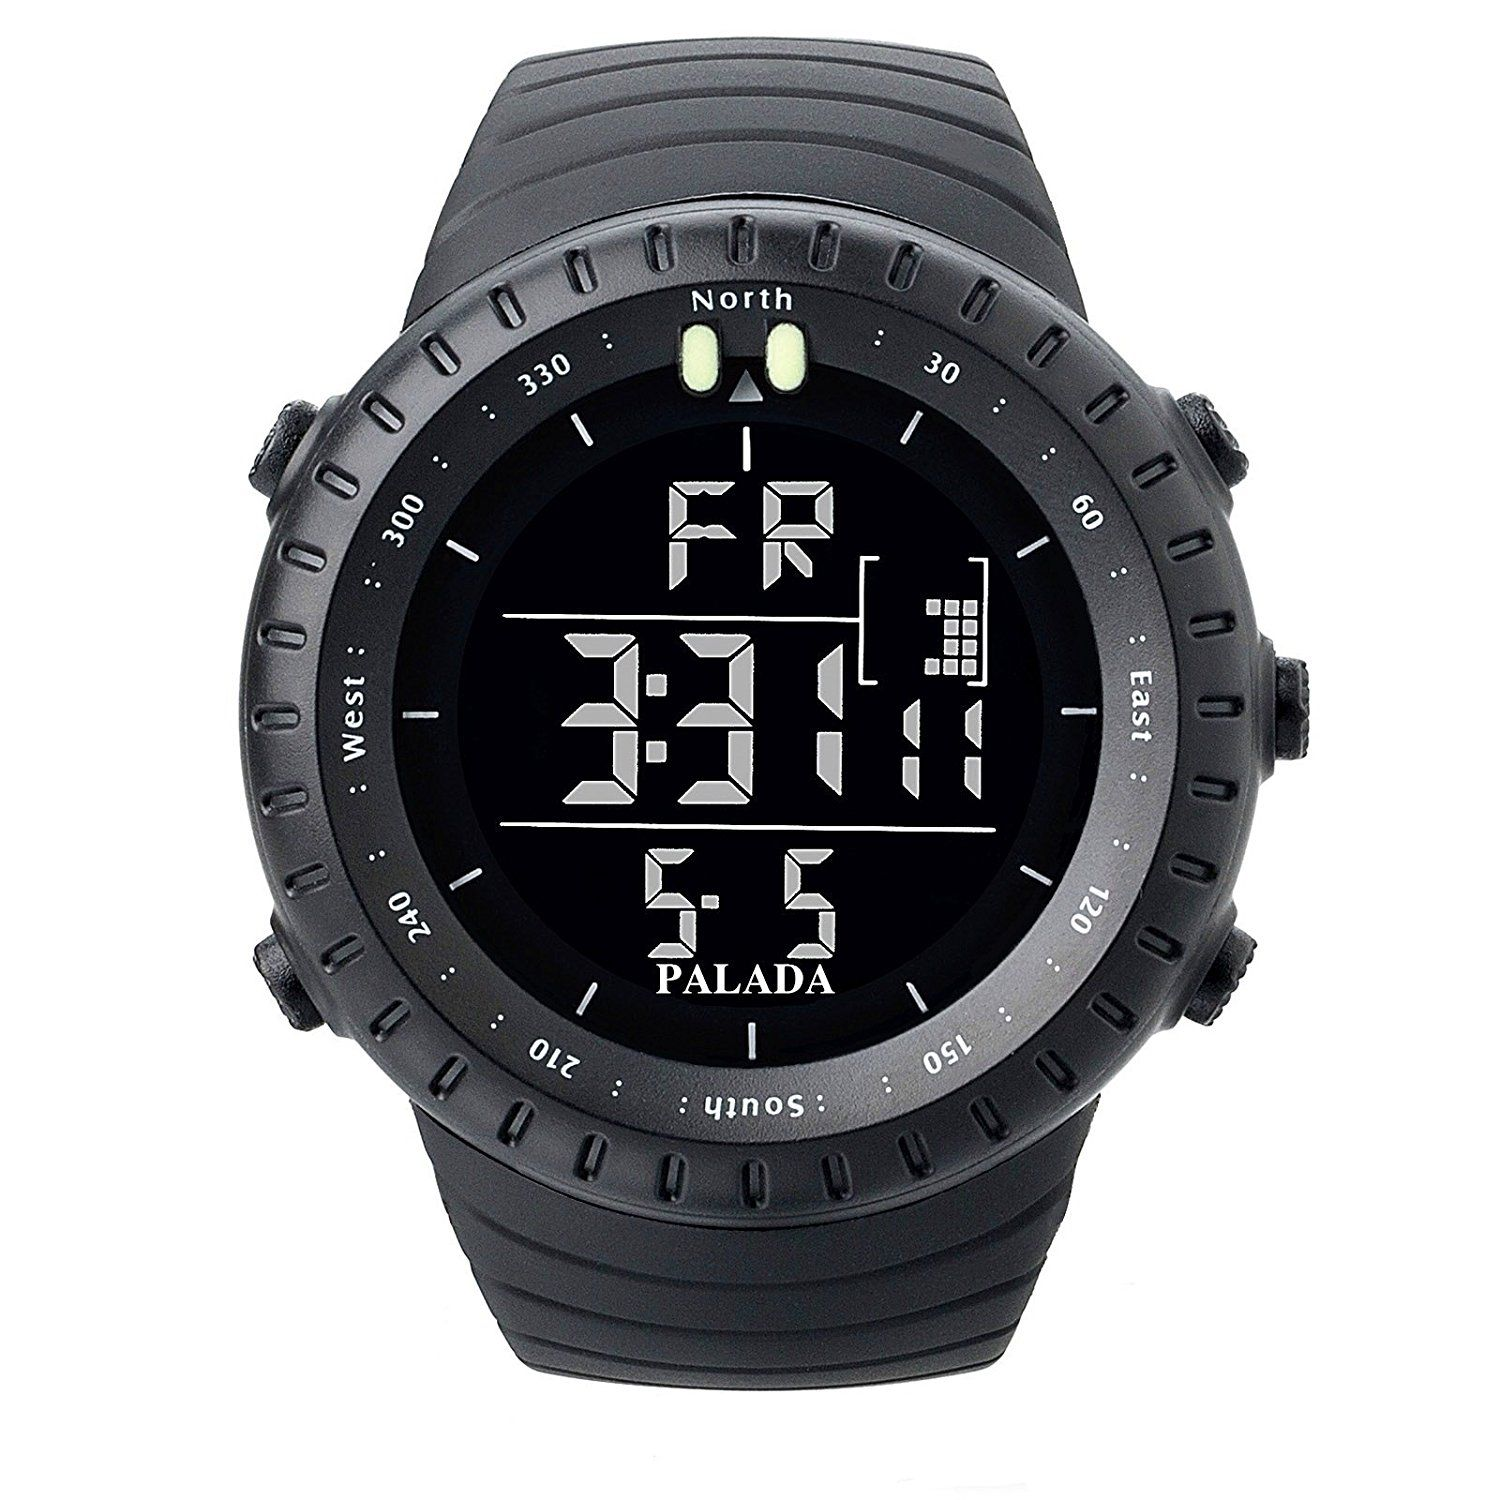 Gifts for Cyclists PALADA Men's Sports Digital Wrist